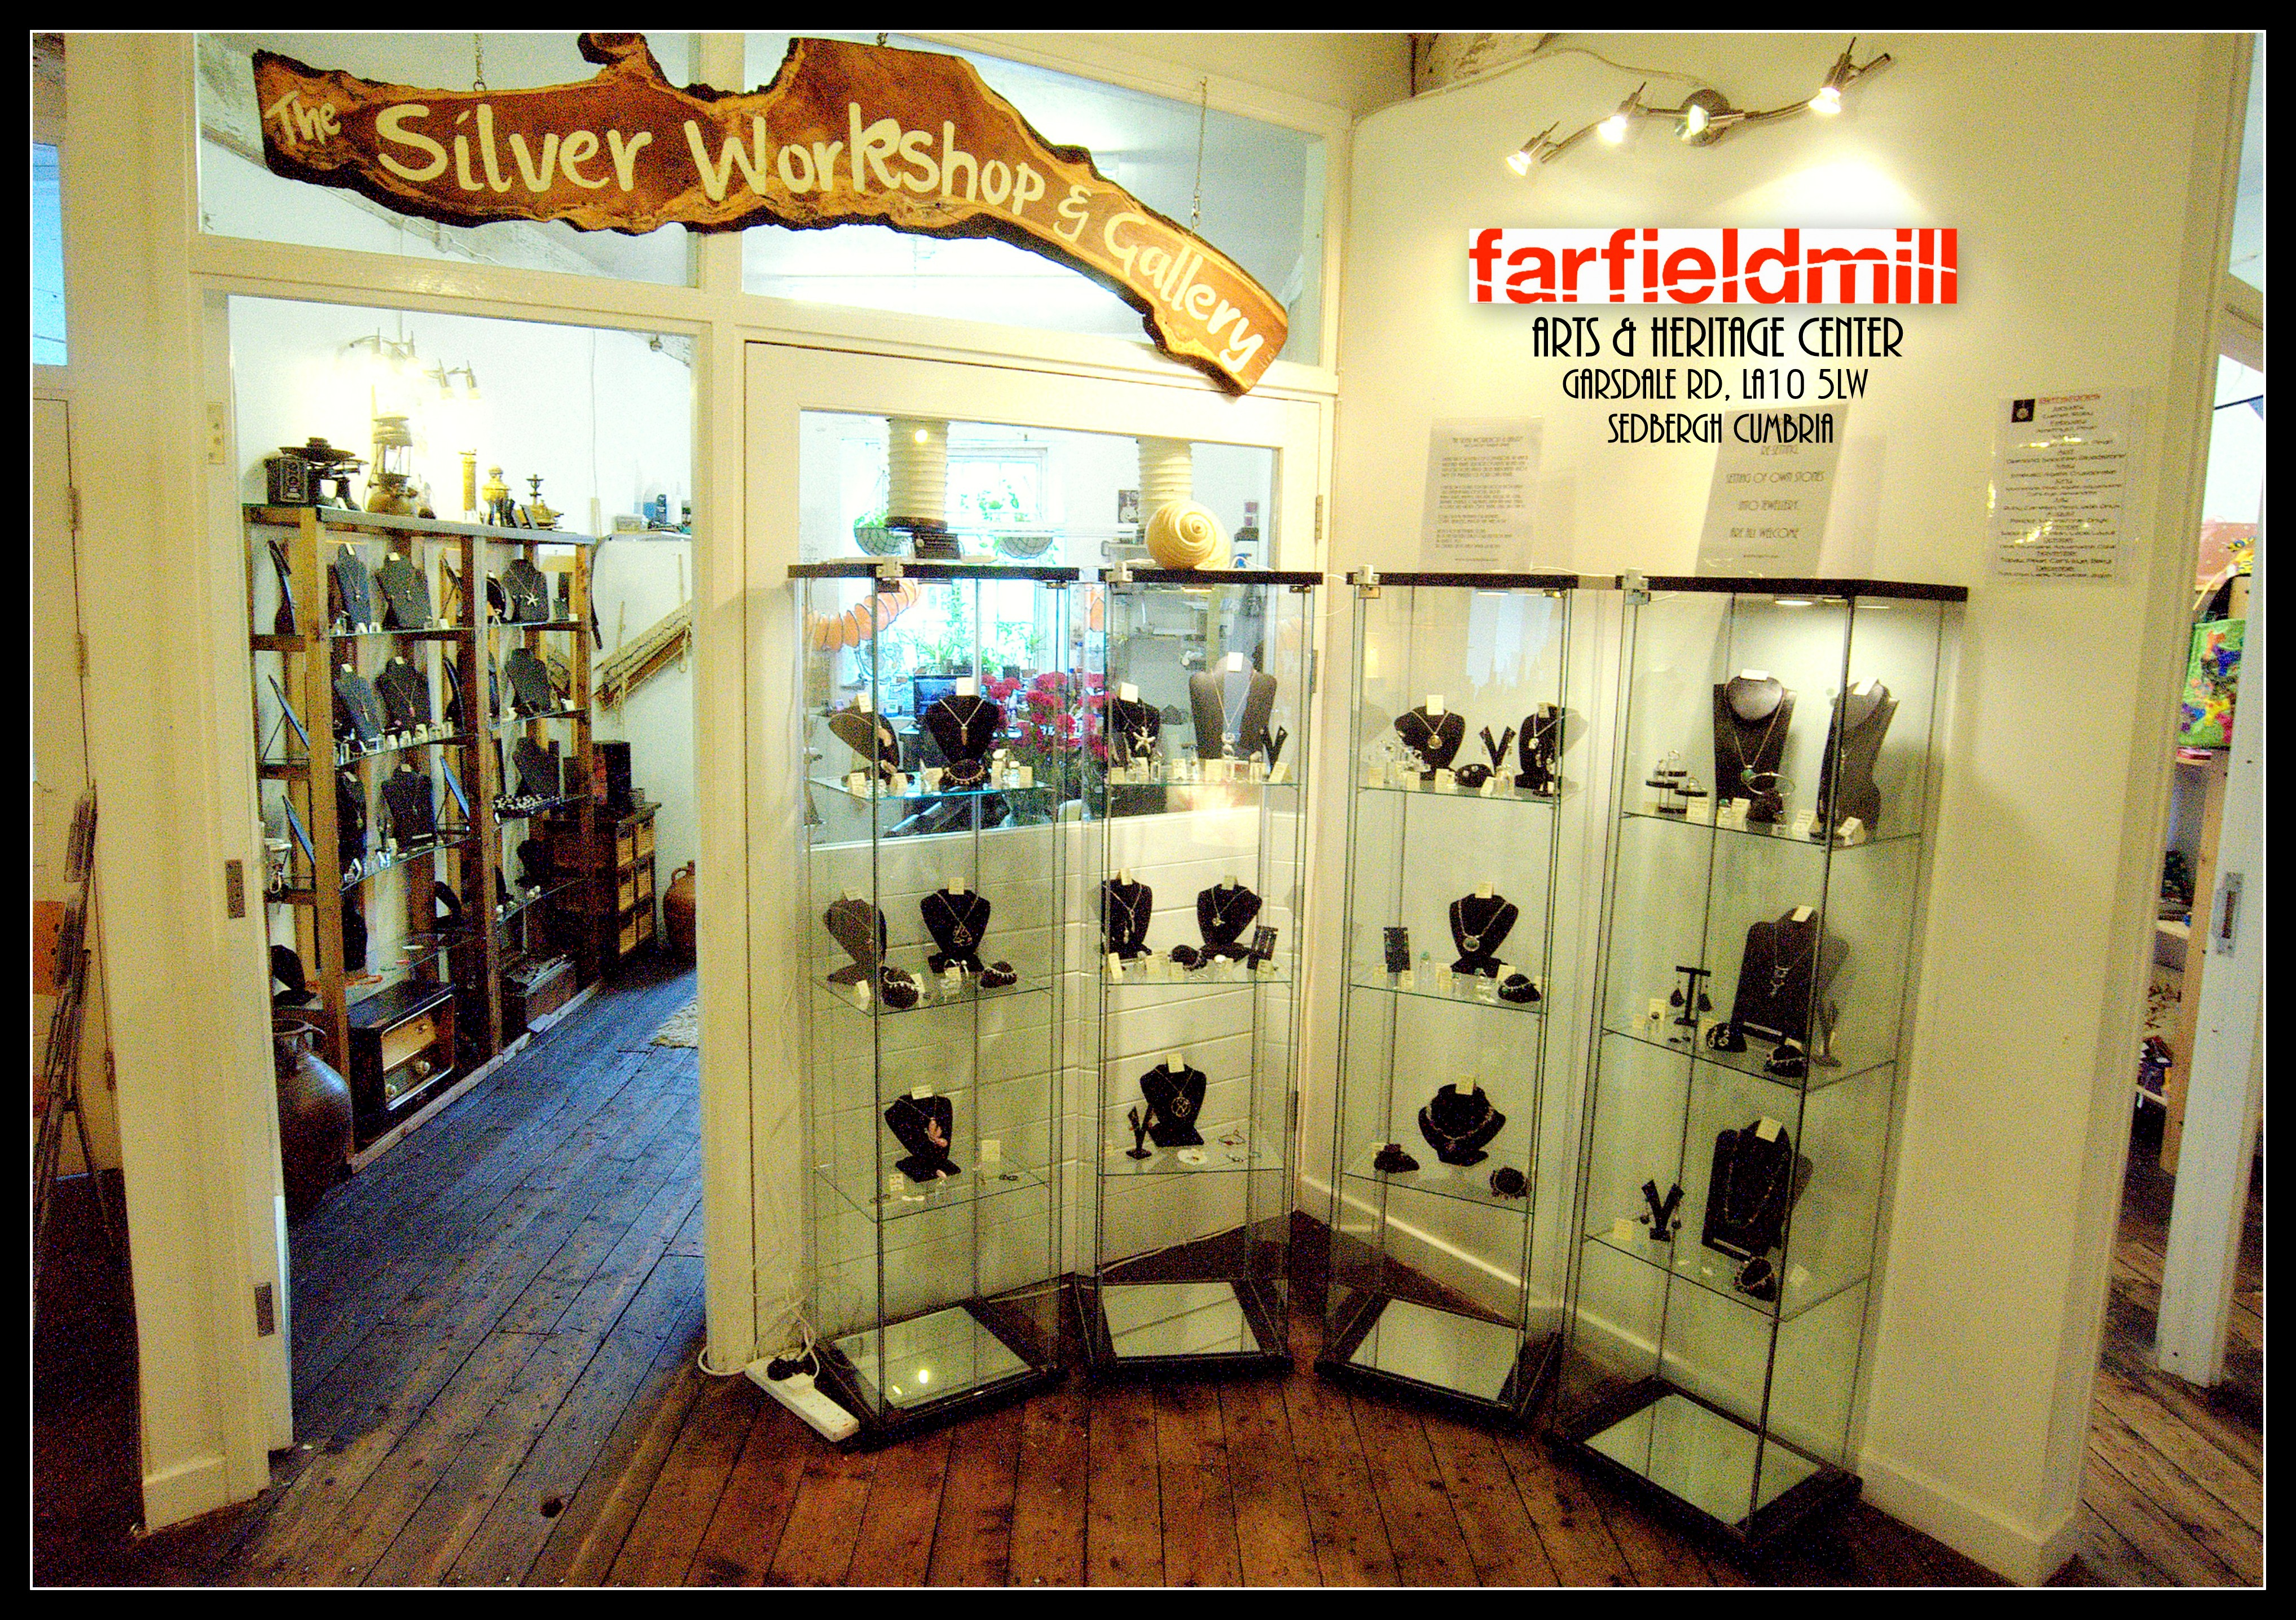 The Silver Workshop & Gallery 20151-003